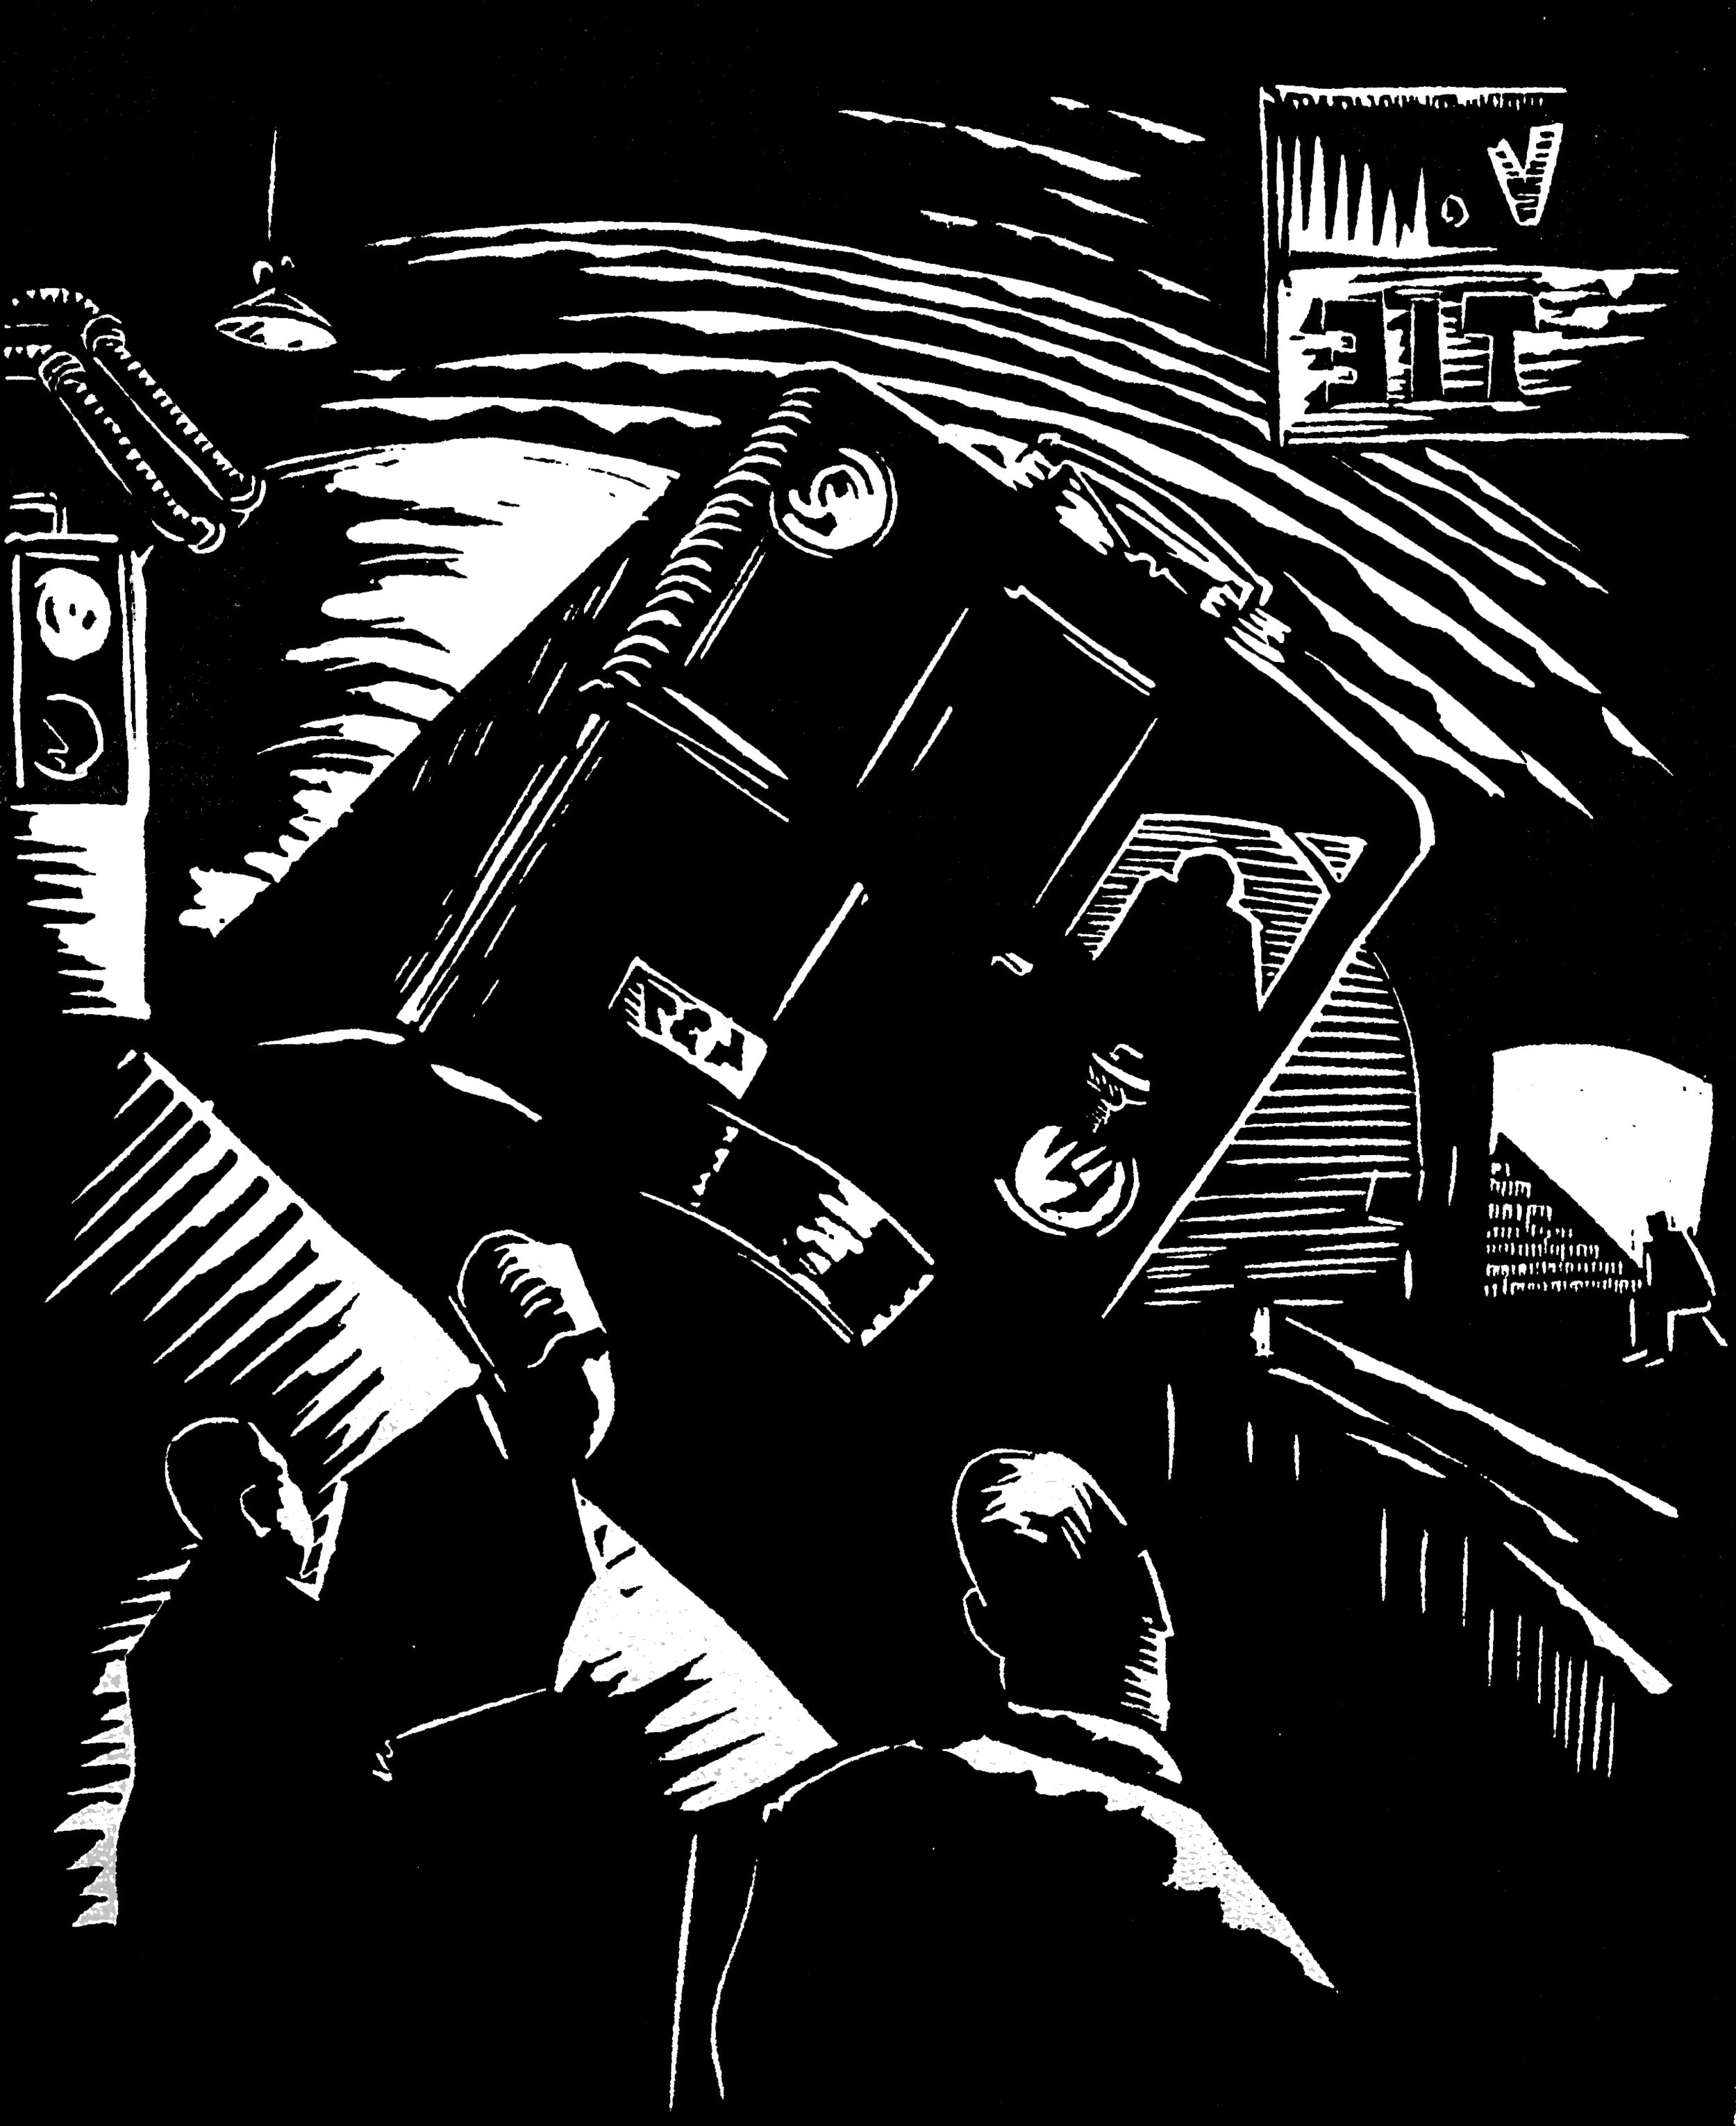 Subway Train linocut.jpg